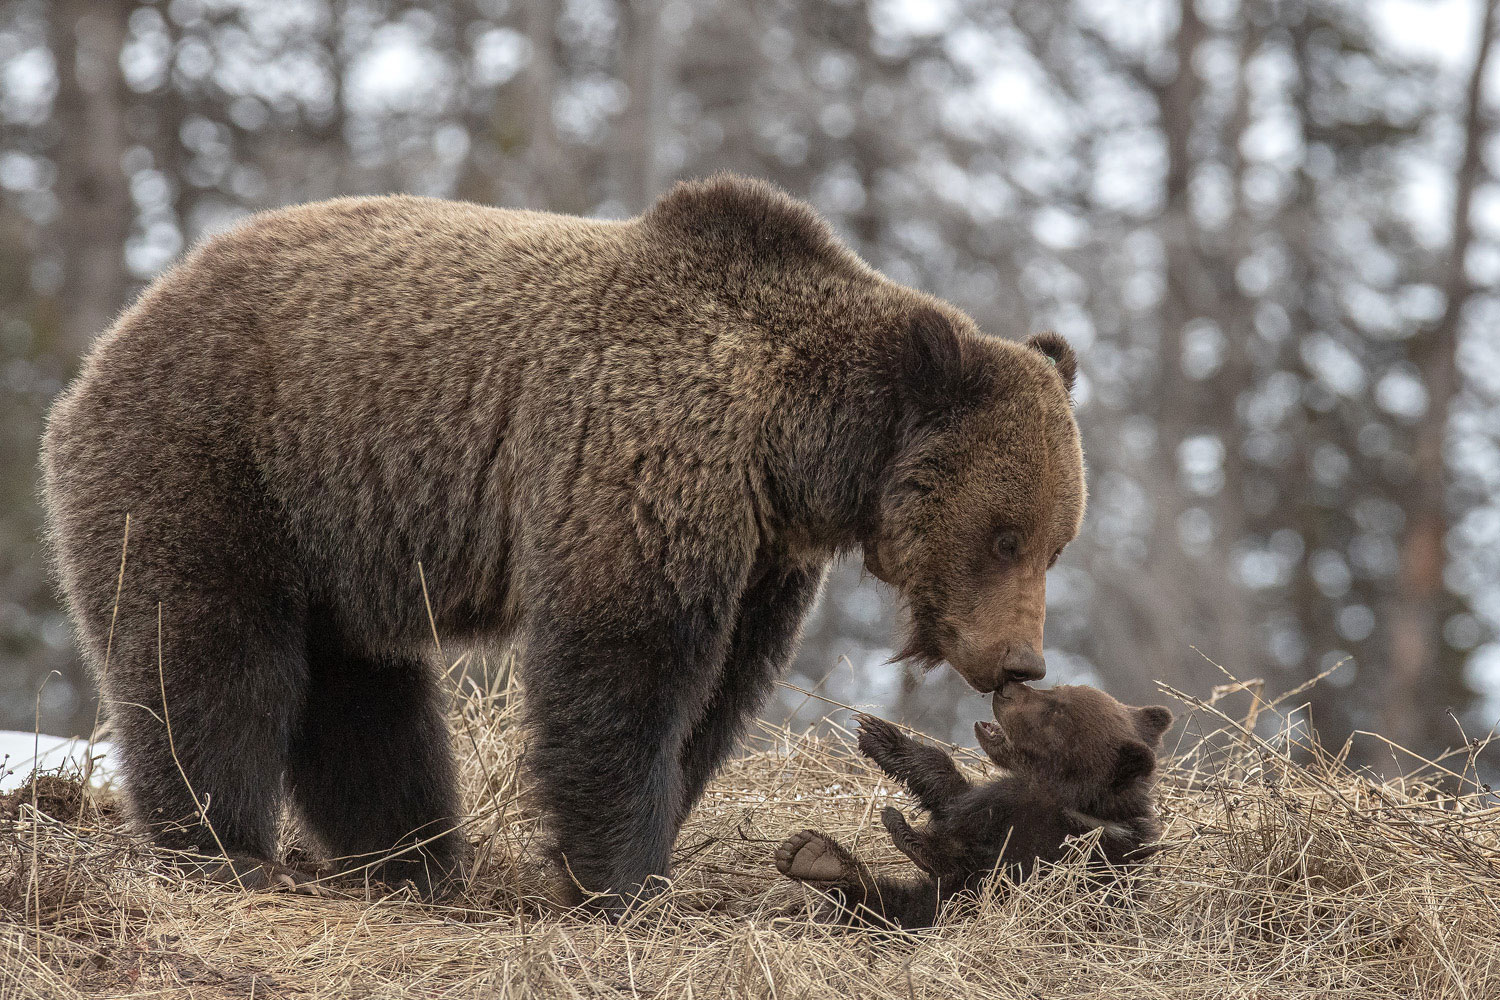 Grizzly Tenderness.  Felicia gives some tender loving to her cub, Felicia.